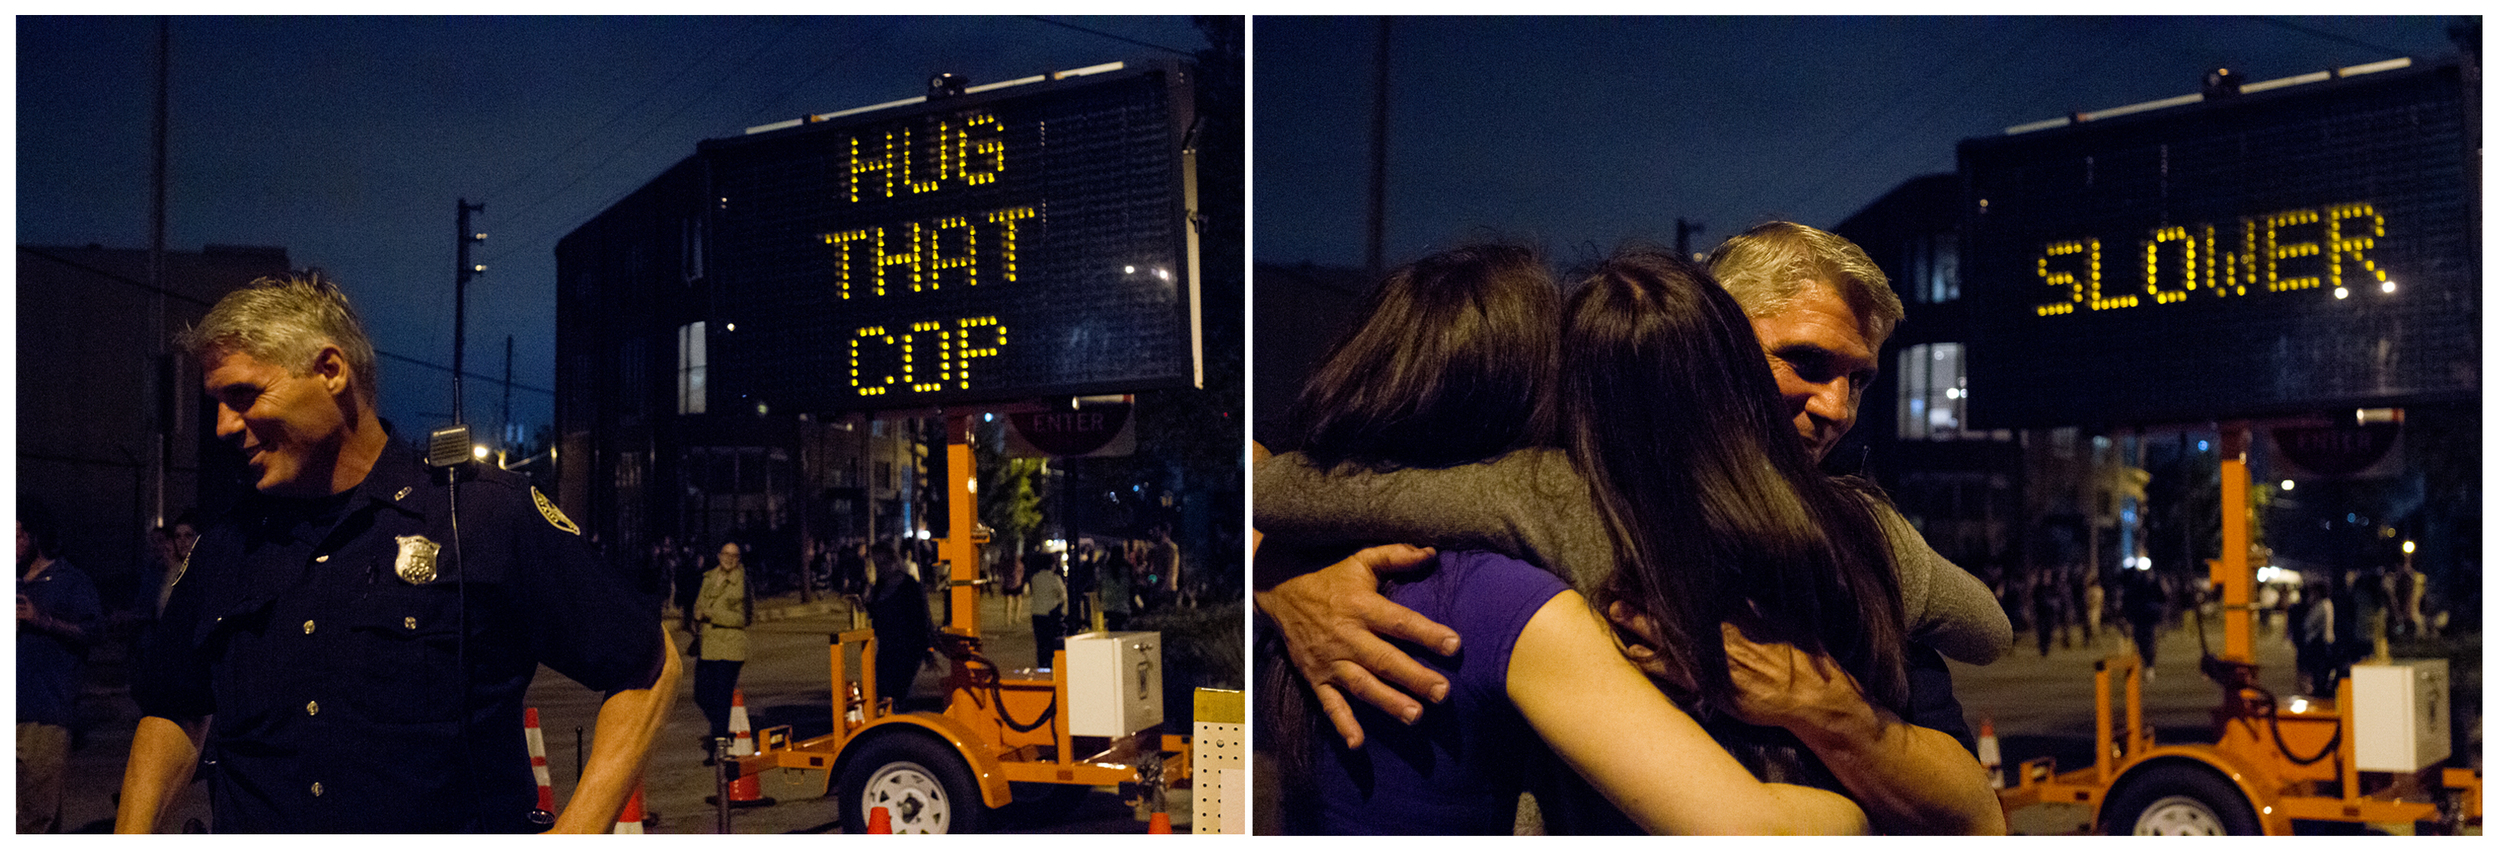 TROLL_Stefani Byrd + Wes Eastin_HUG THAT COP.jpg